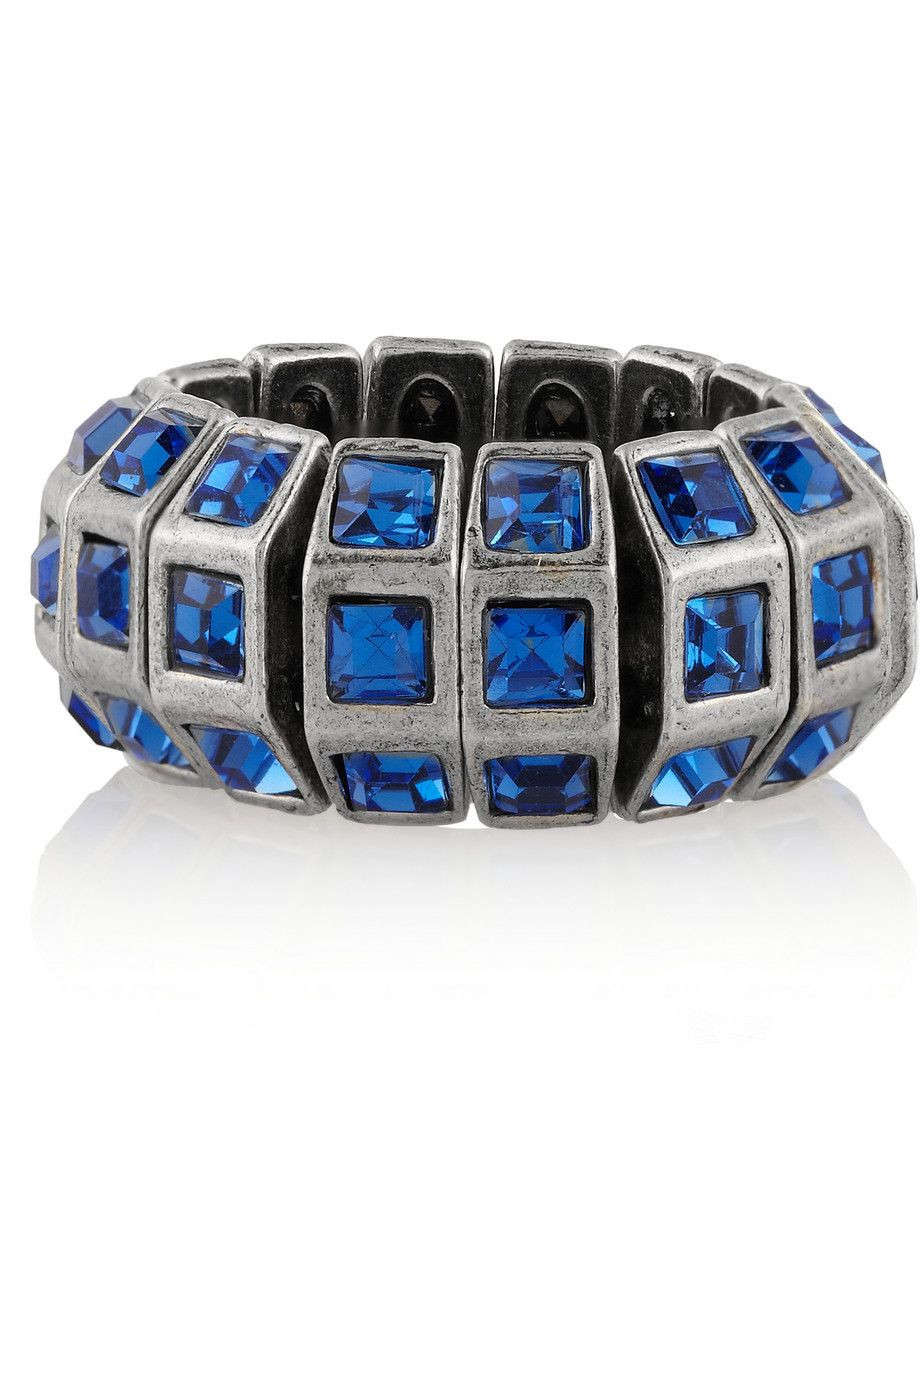 Marlène silver-plated Swarovski crystal ring by Philippe Audibert